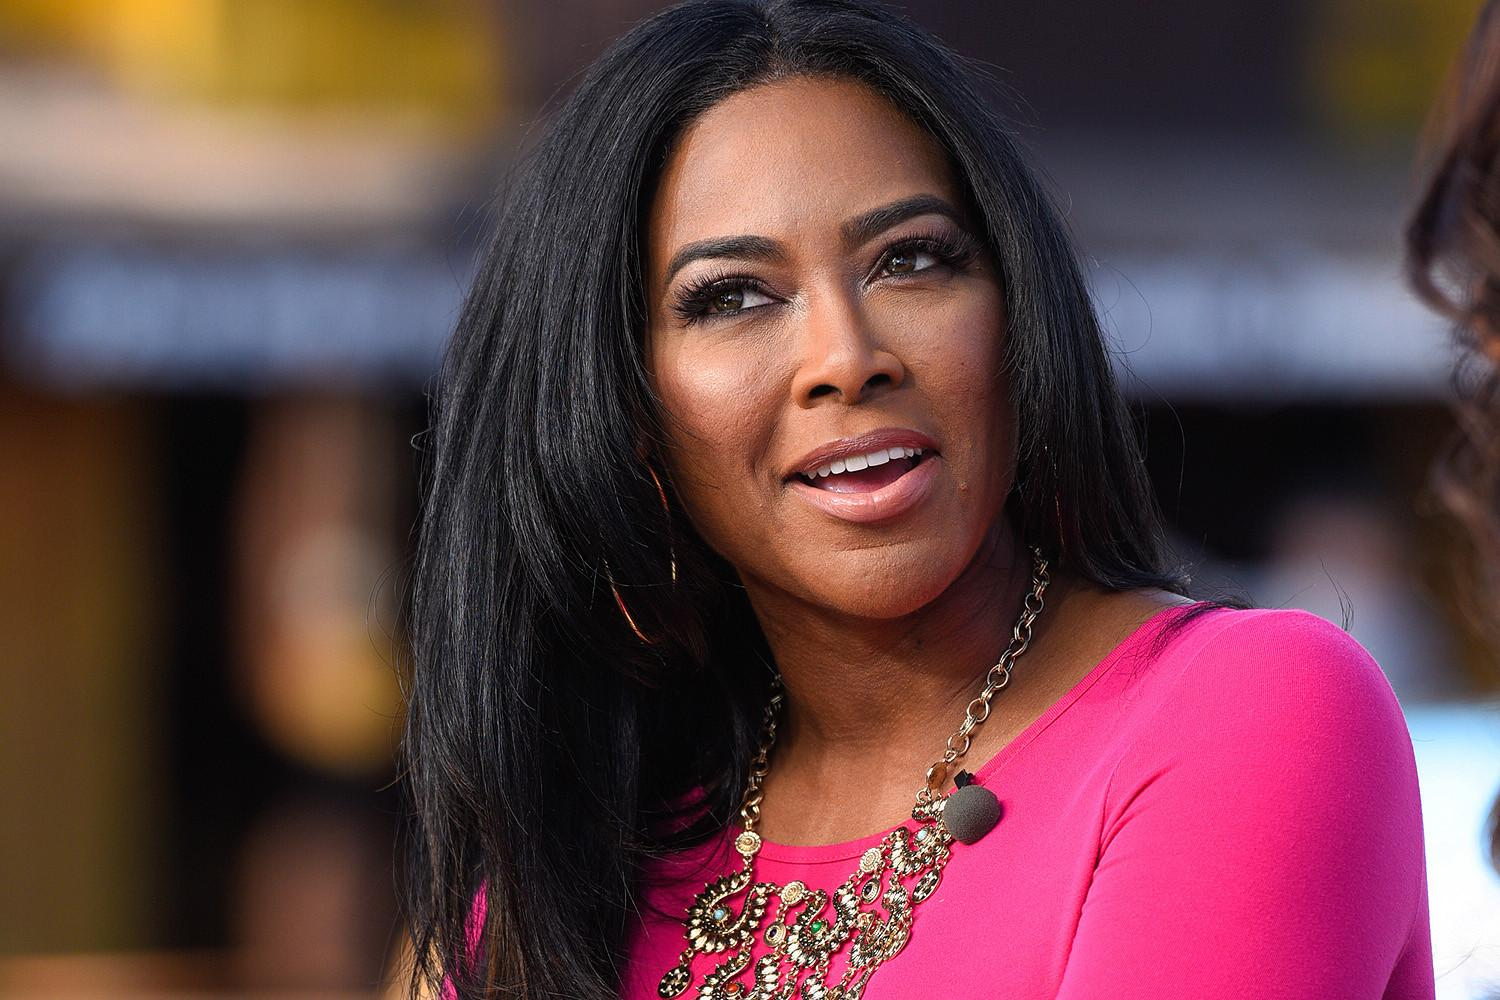 Kenya Moore Shares A Lot Of Skin In Her Latest Photo And Fans Cannot Have Enough Of Her